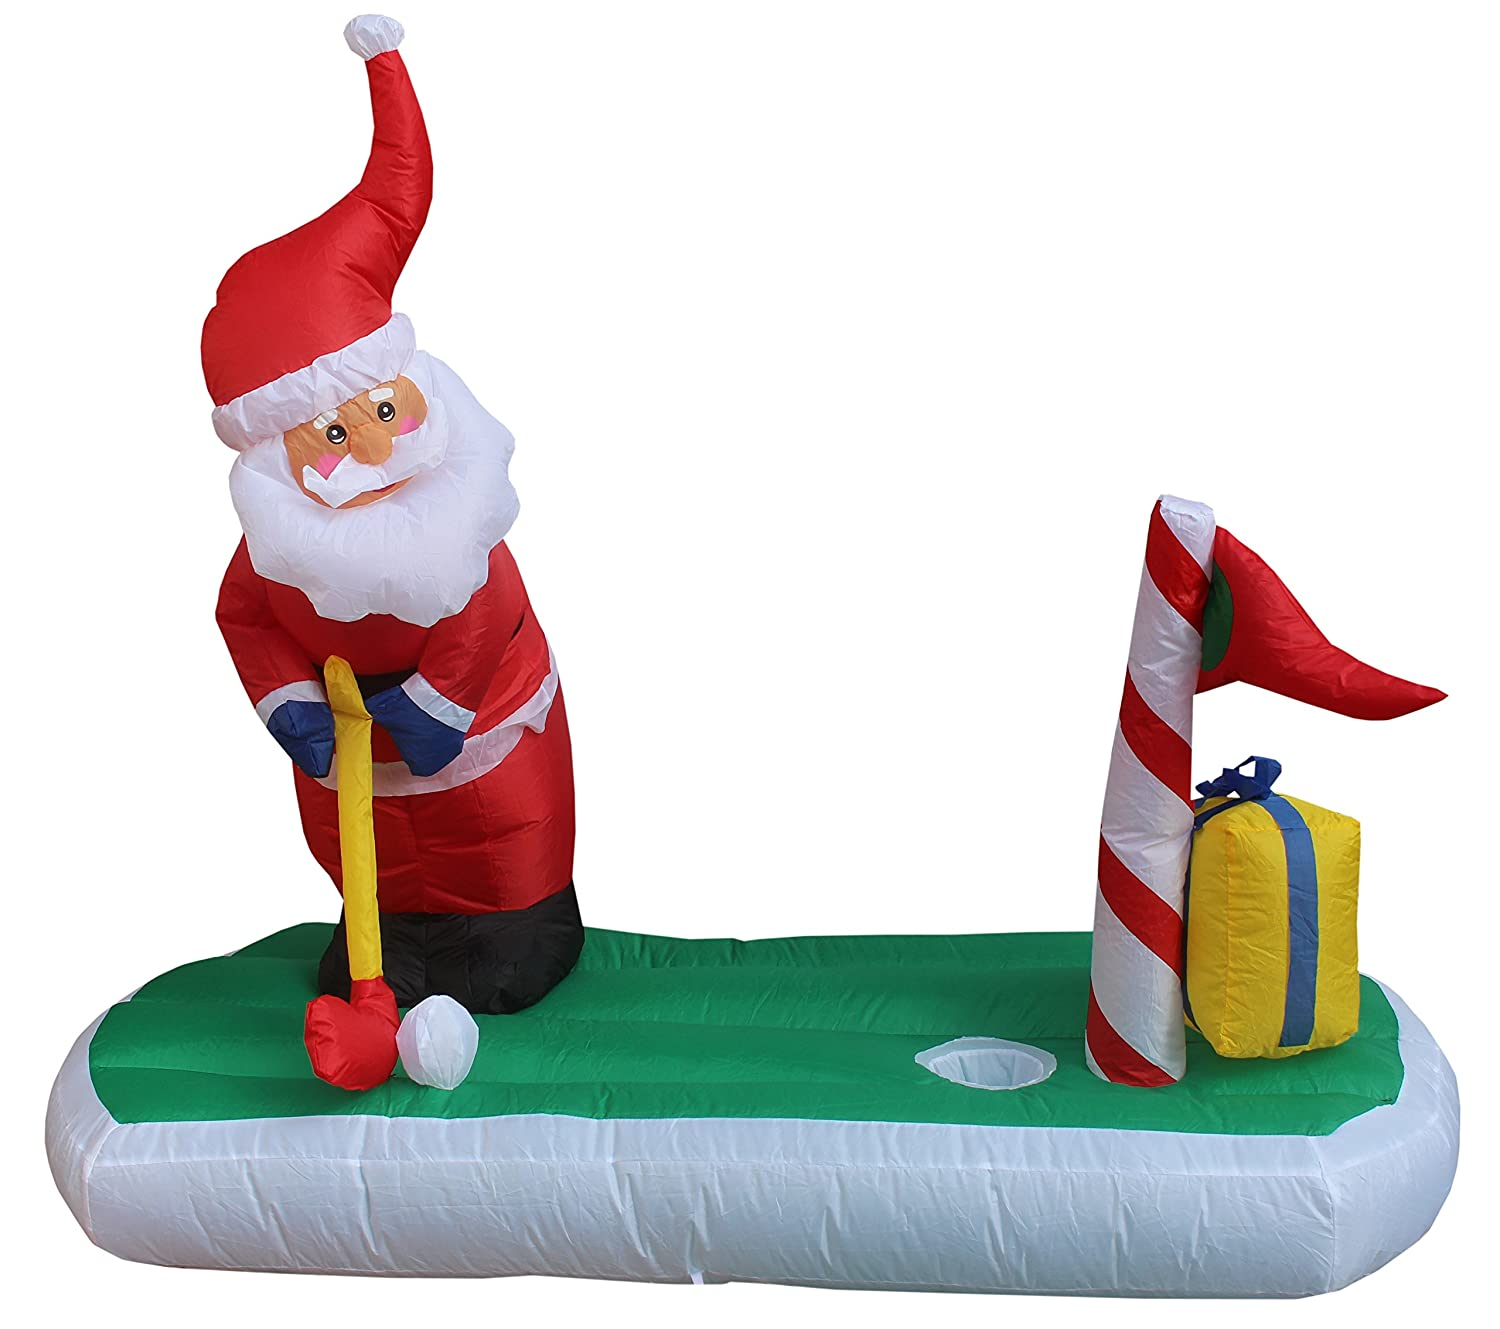 BZB Goods 5 Foot Long Christmas Inflatable Santa Claus Play Golf Yard Decoration Lights Decor Outdoor Indoor Holiday Decorations, Blow up Lighted Yard Decor, Lawn Inflatables Home Family Outside